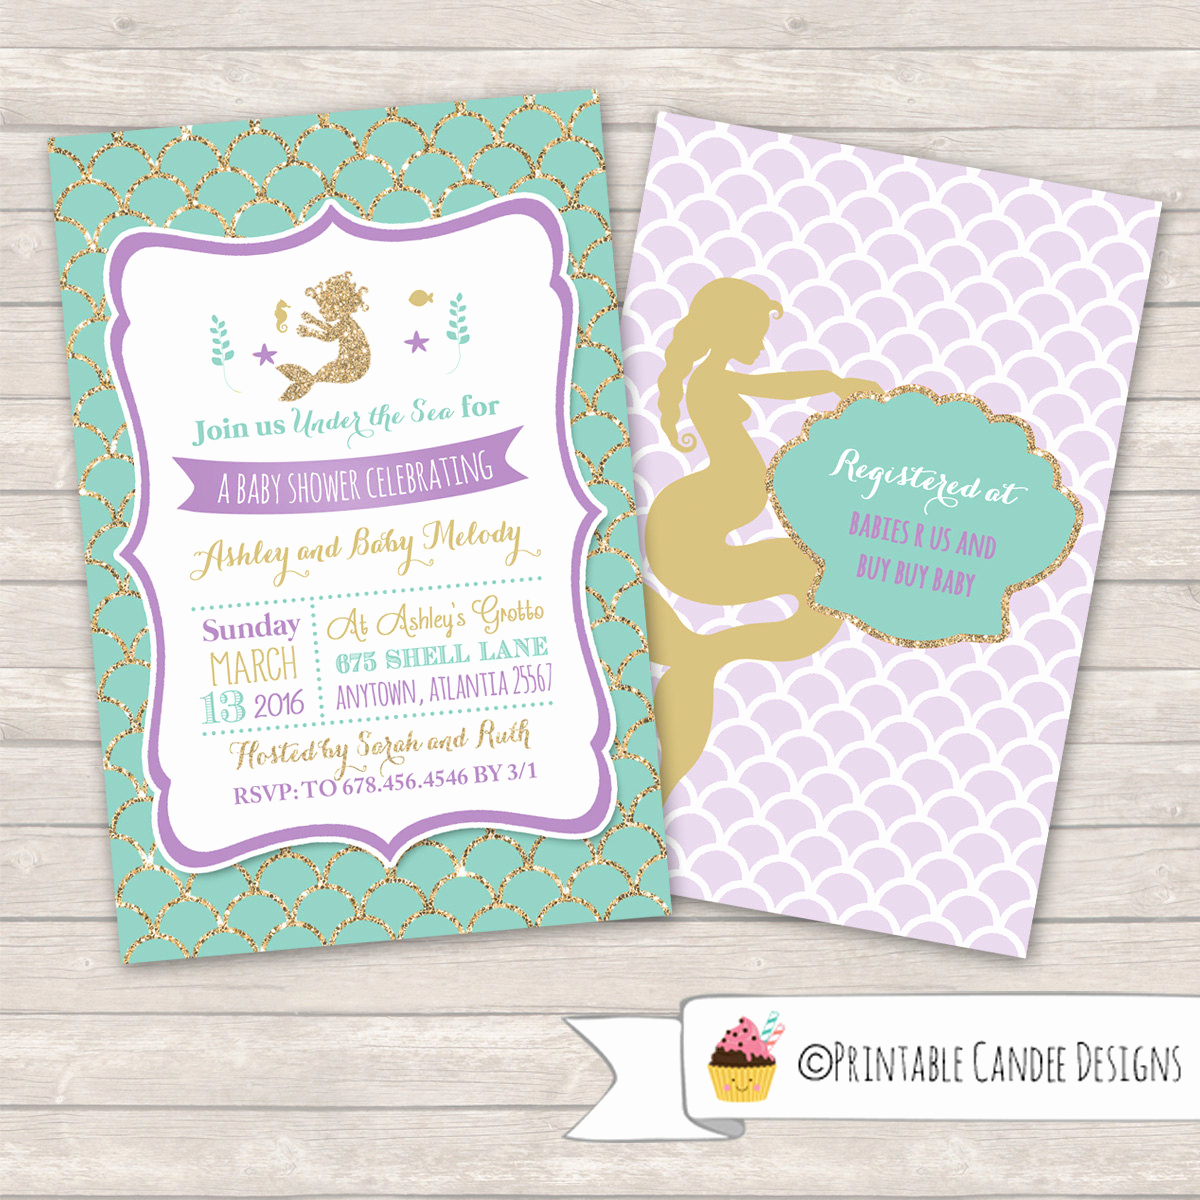 Mermaid Baby Shower Invitations Lovely Mermaid Baby Shower Invitation Mermaid Baby by Printablecandee